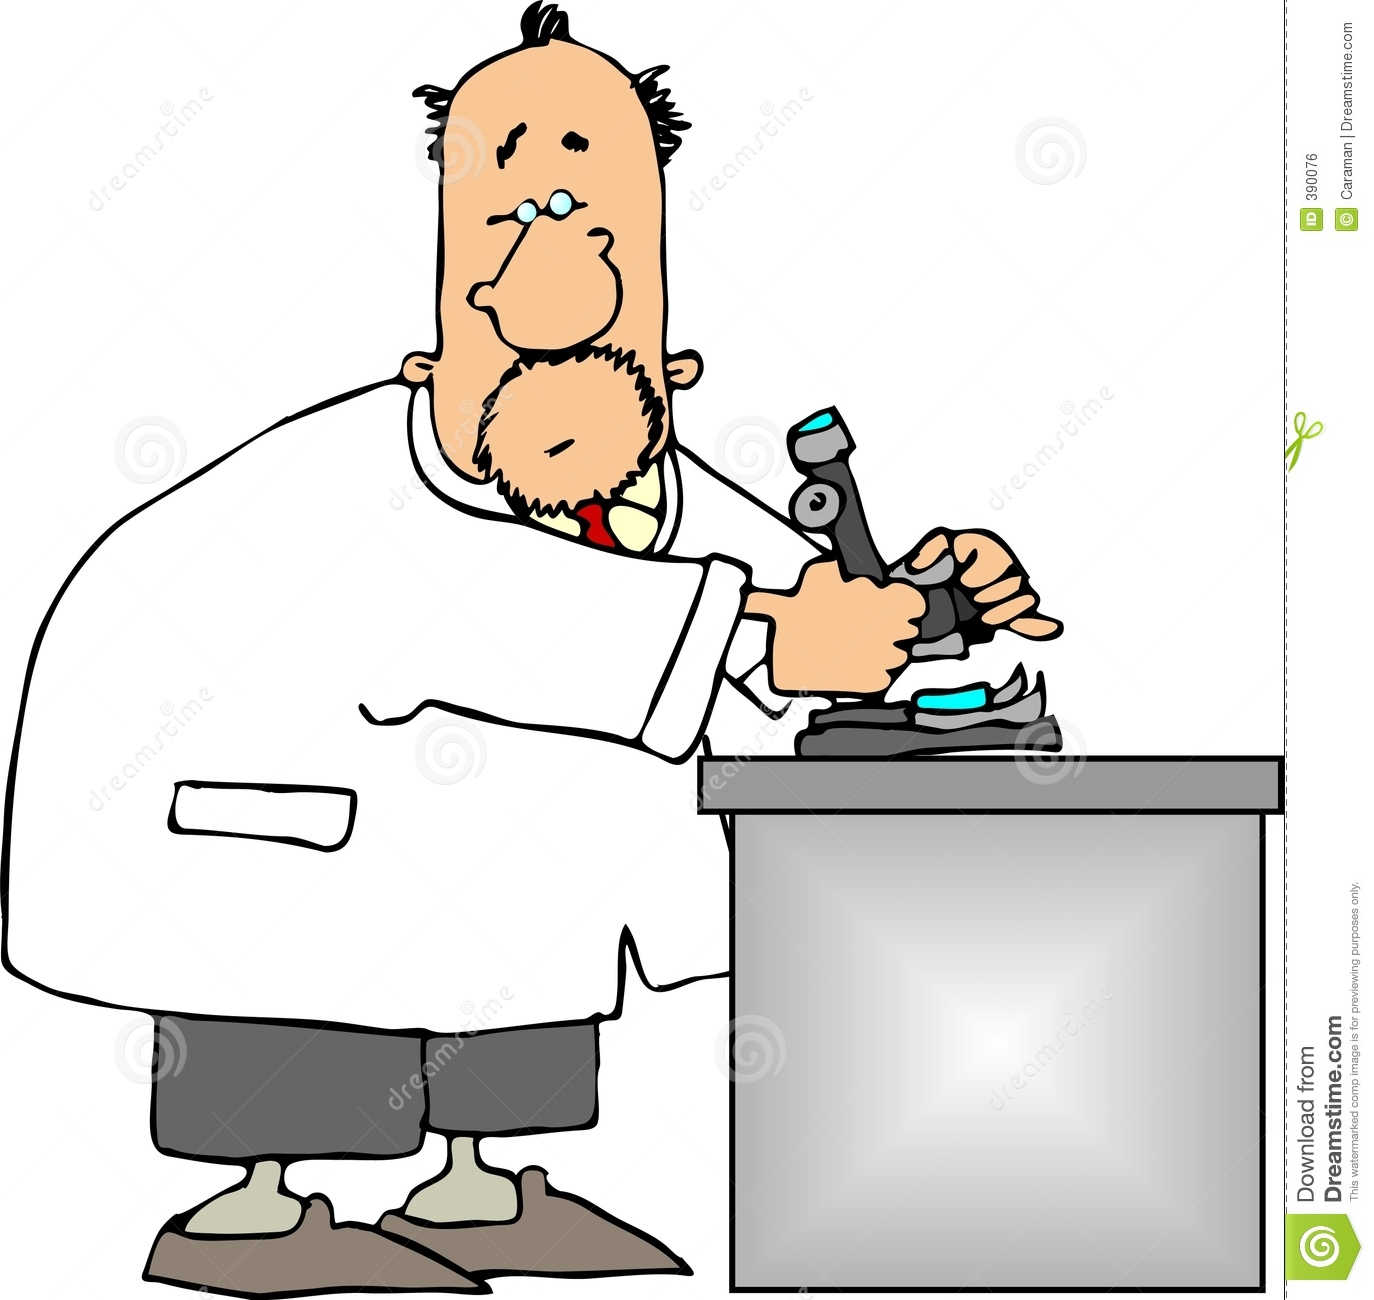 cartoon microscope stock illustrations 11 371 cartoon microscope stock illustrations vectors clipart dreamstime https www dreamstime com royalty free stock image scientist using microscope image390076